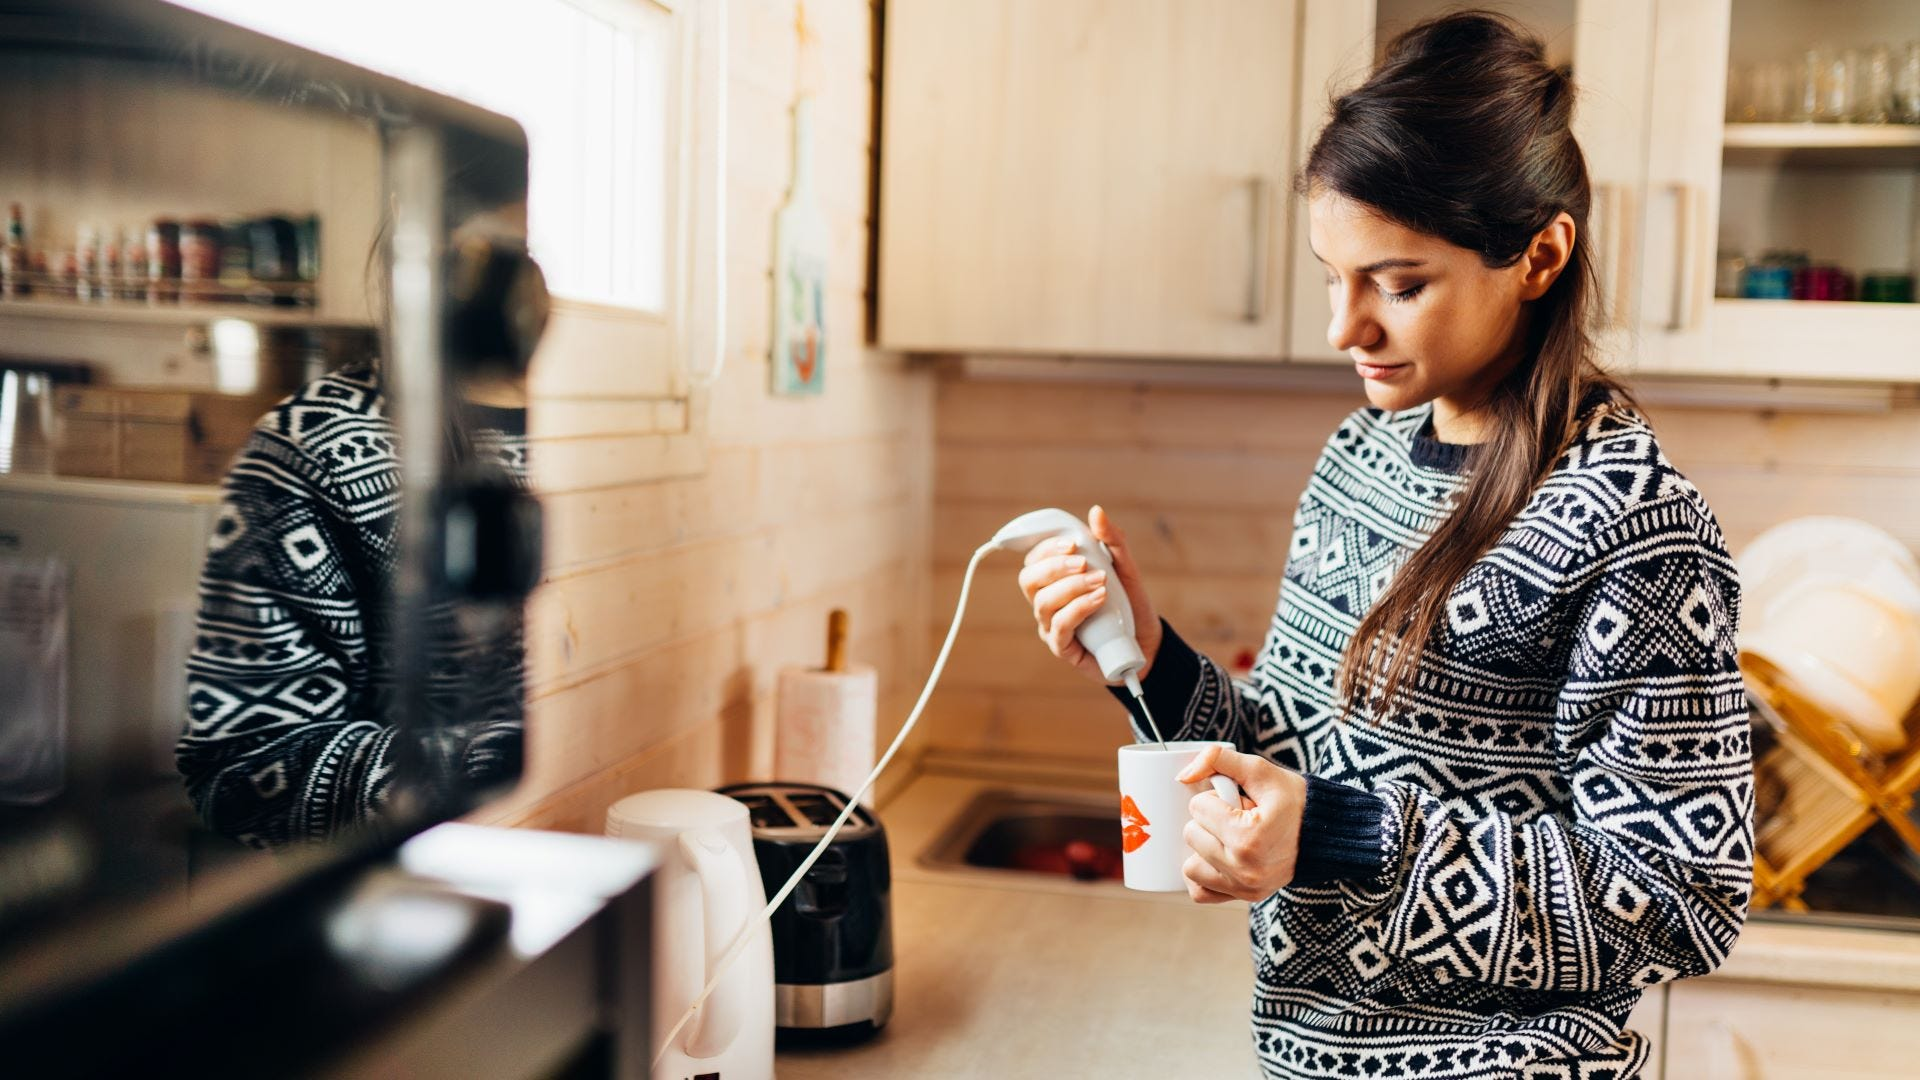 A woman using a milk frother making a mug of whipped coffee.